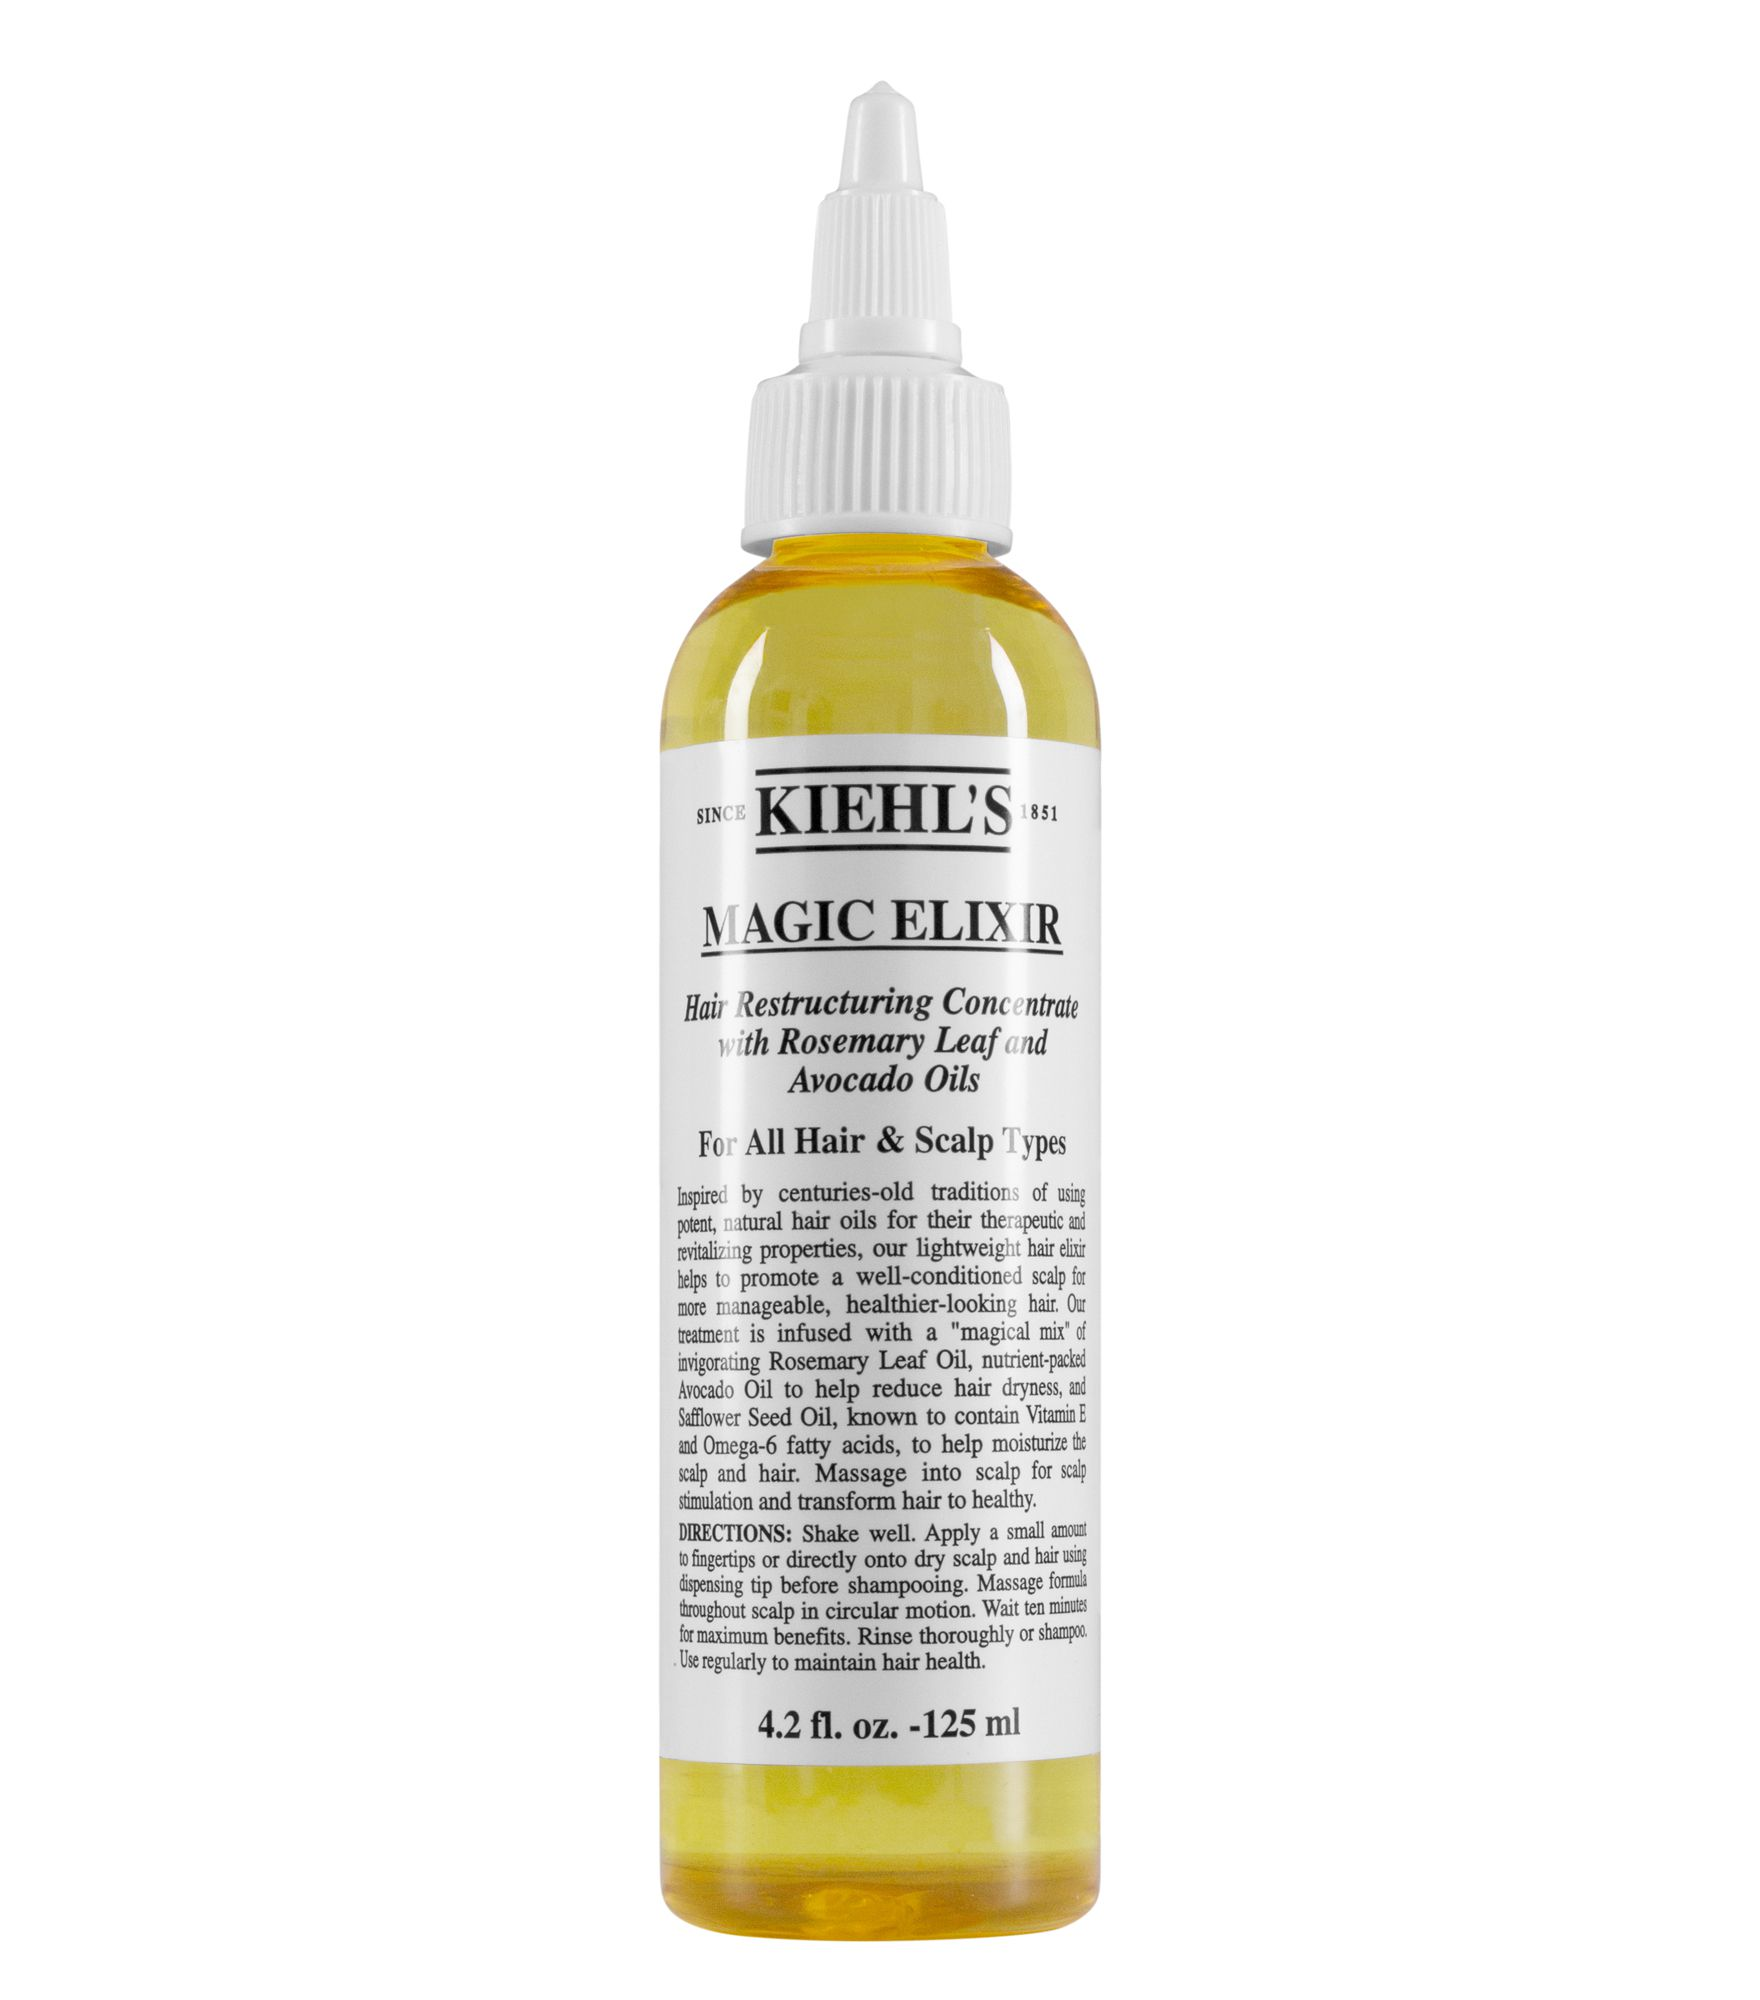 Kiehl's 1851 Magic Elixir Hair Restructuring Concentrate